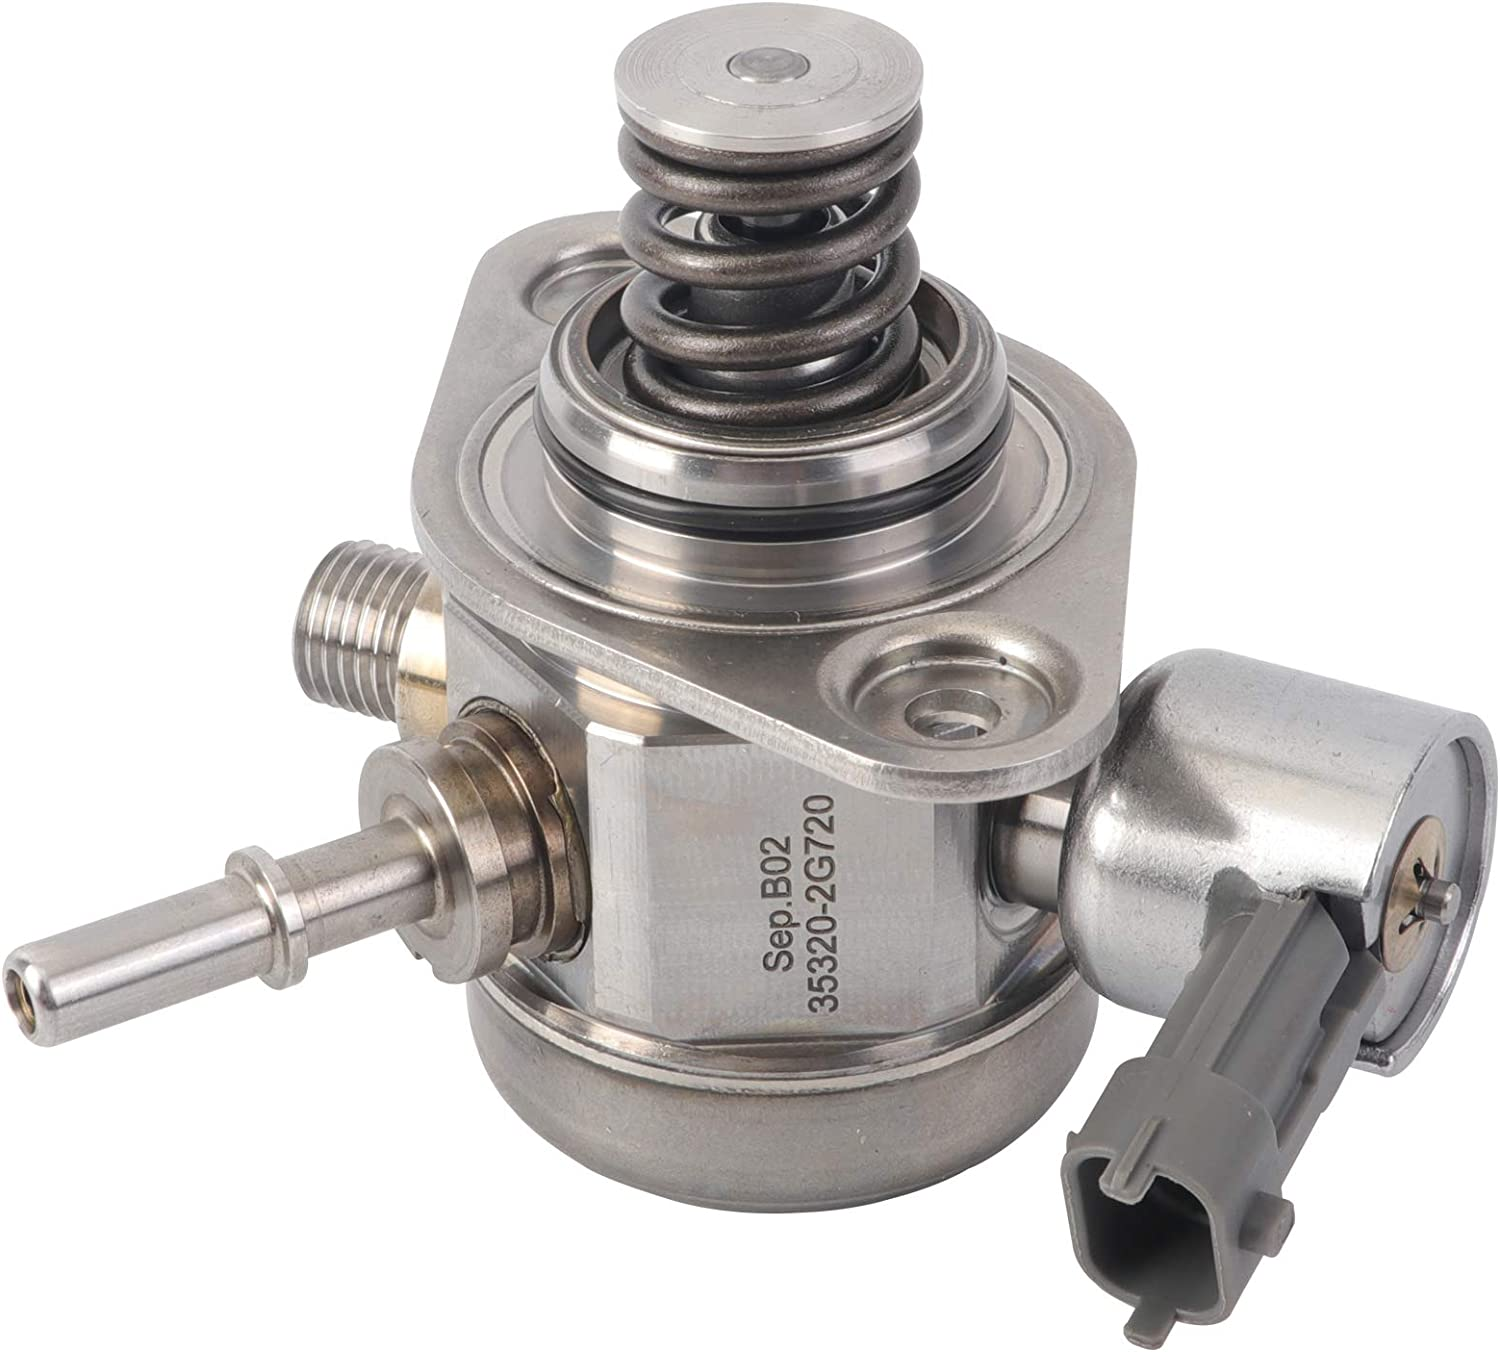 Duolctrams 353202G720 High Pressure Special price Mechanical New item Fit Fuel for Pump